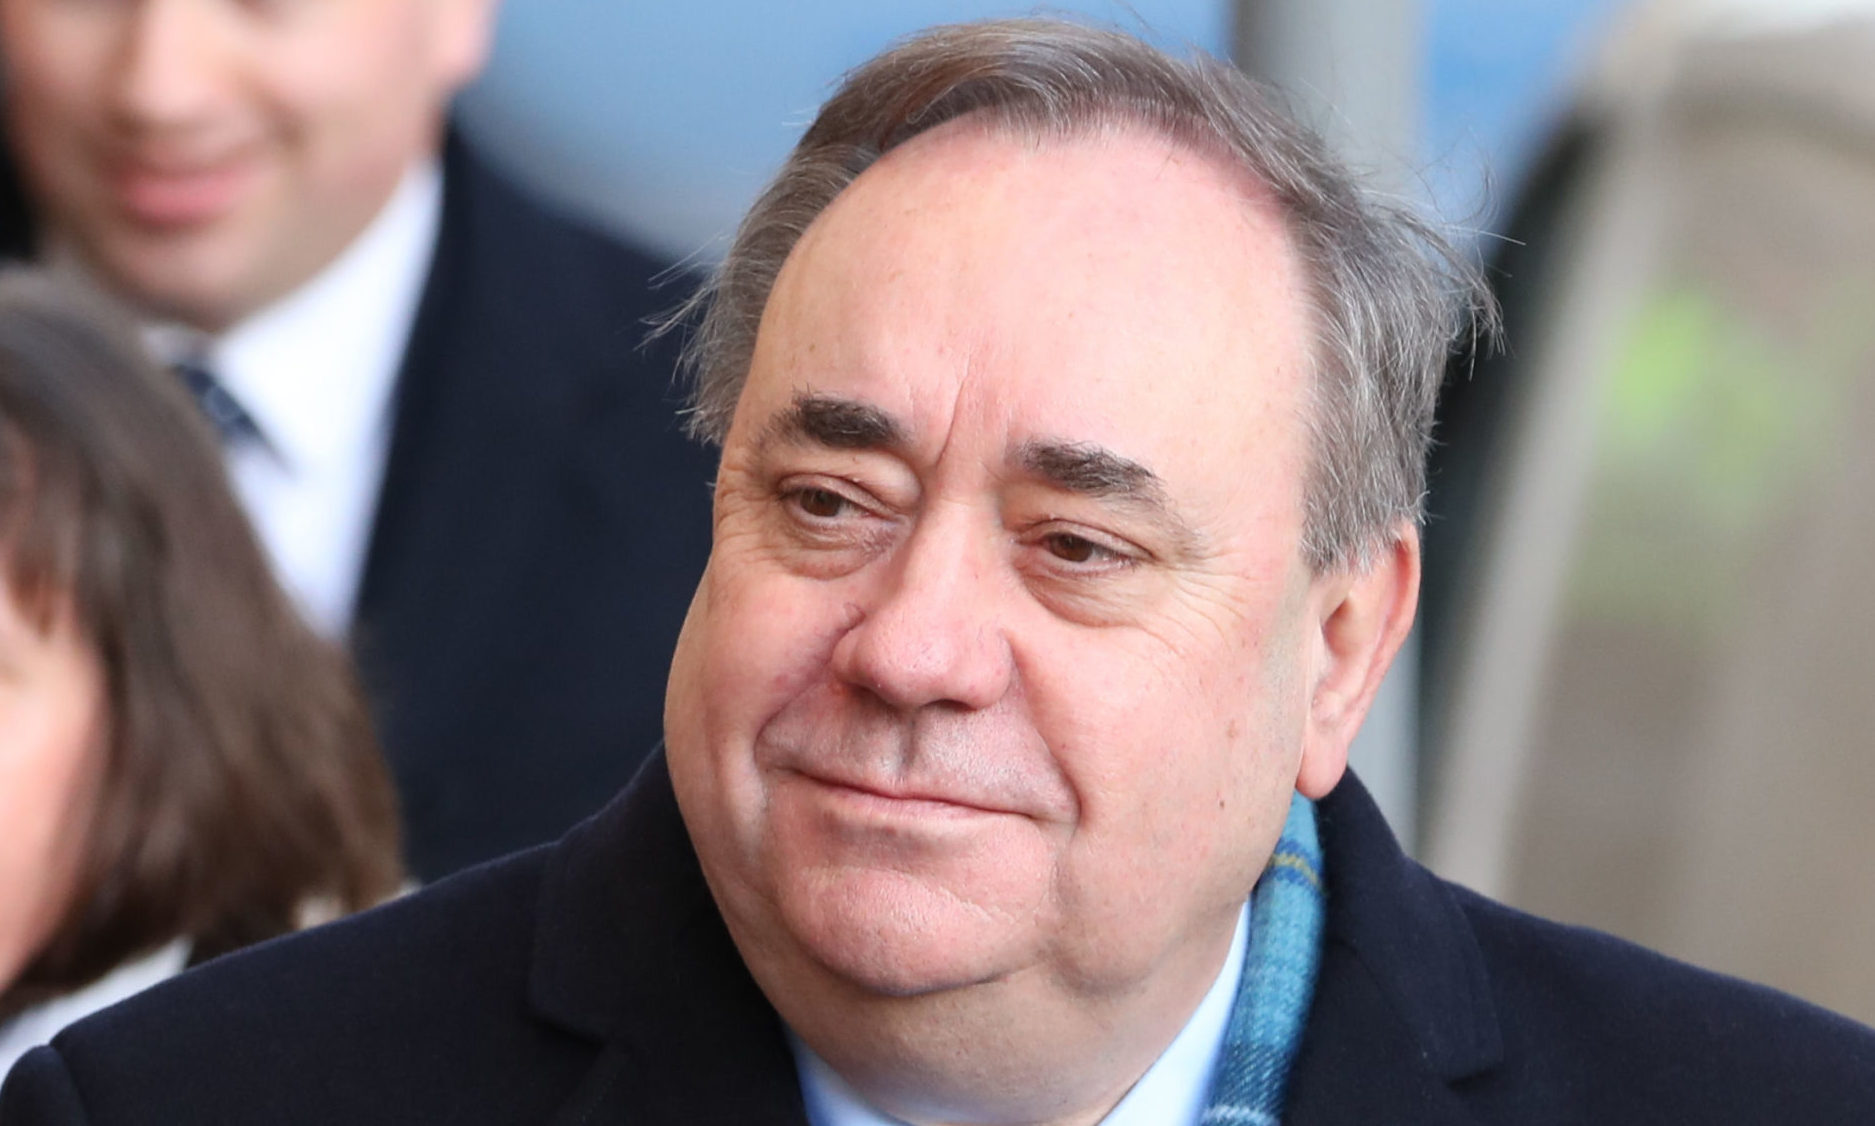 Alex Salmond arriving at the High Court in Edinburgh for the first day of his trial.